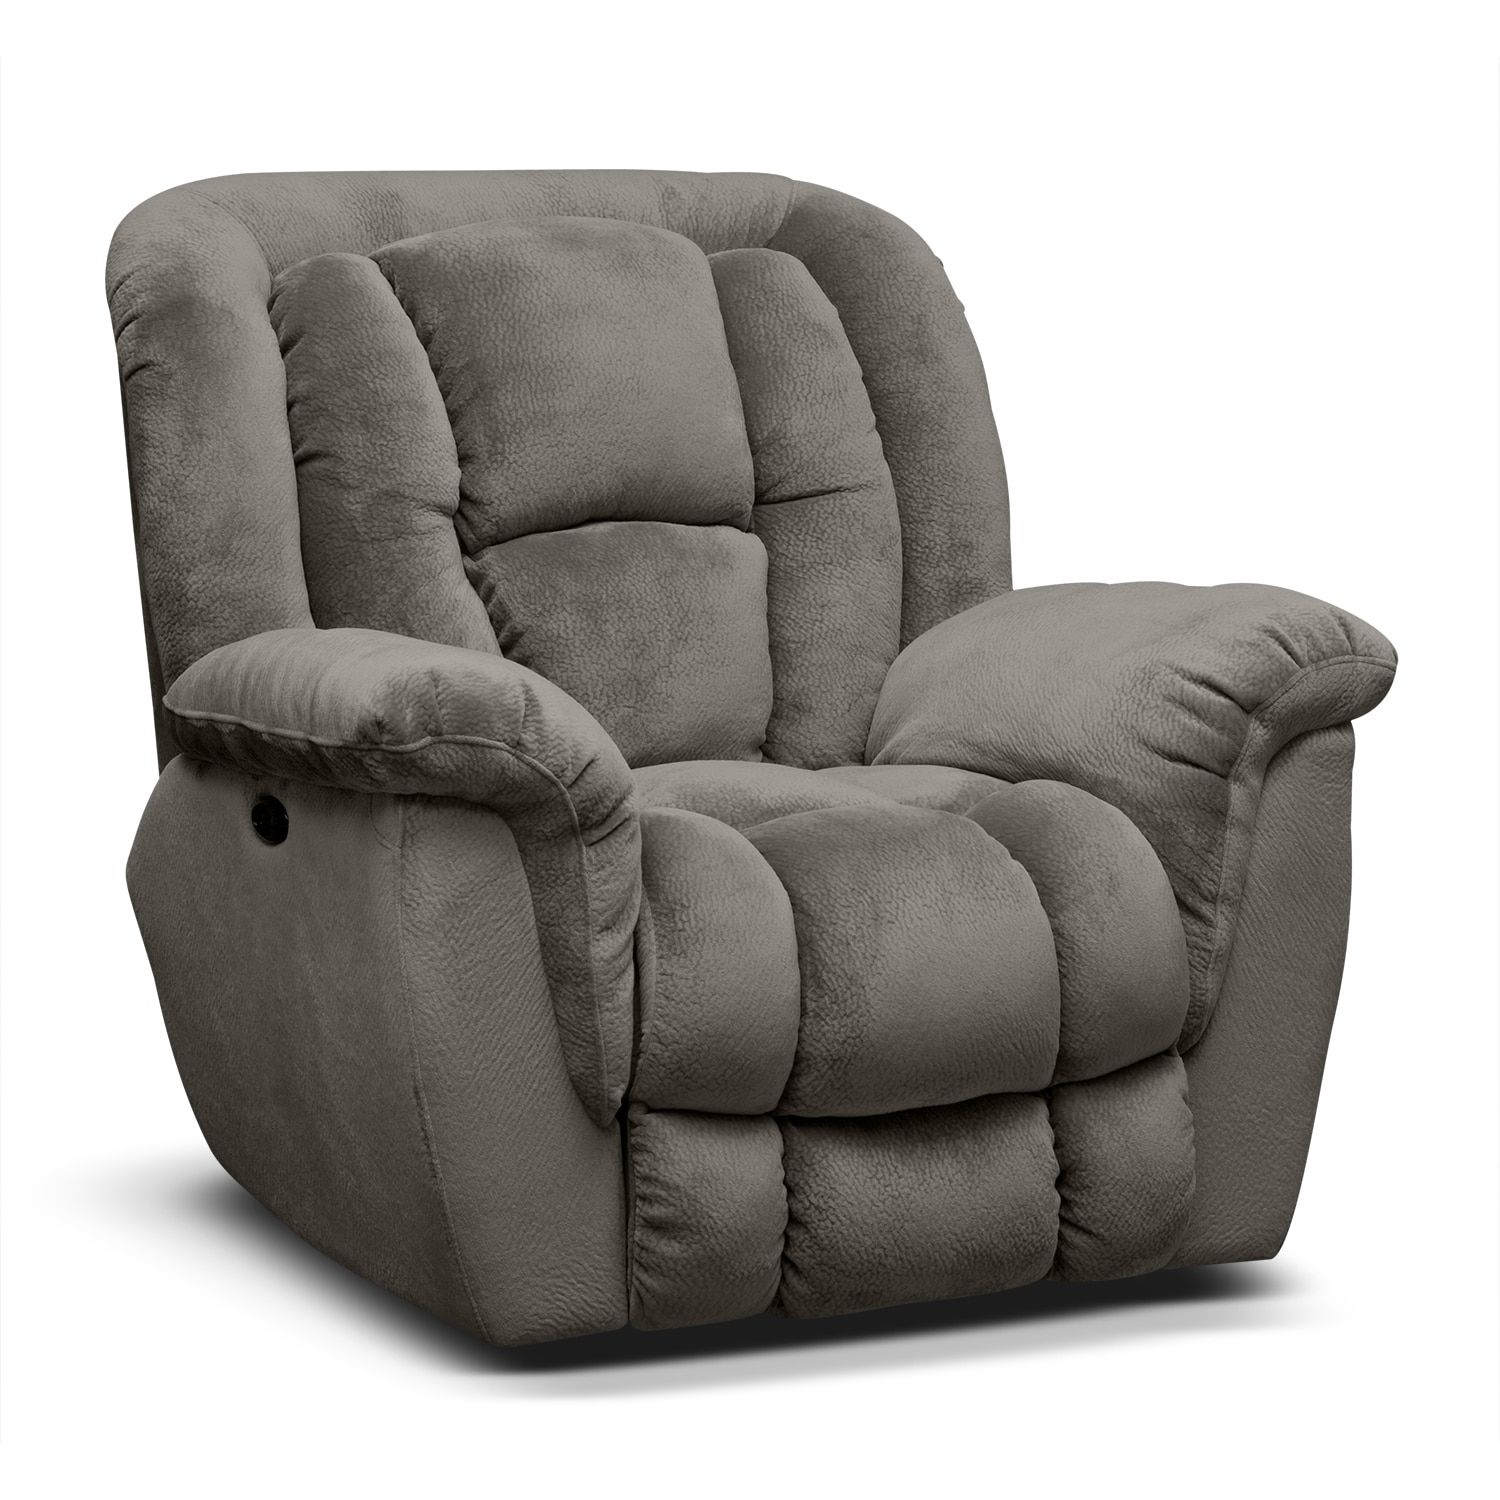 Living Room Furniture Mammoth Power Recliner Gray Living Room Decor Furniture Value City Furniture Furniture